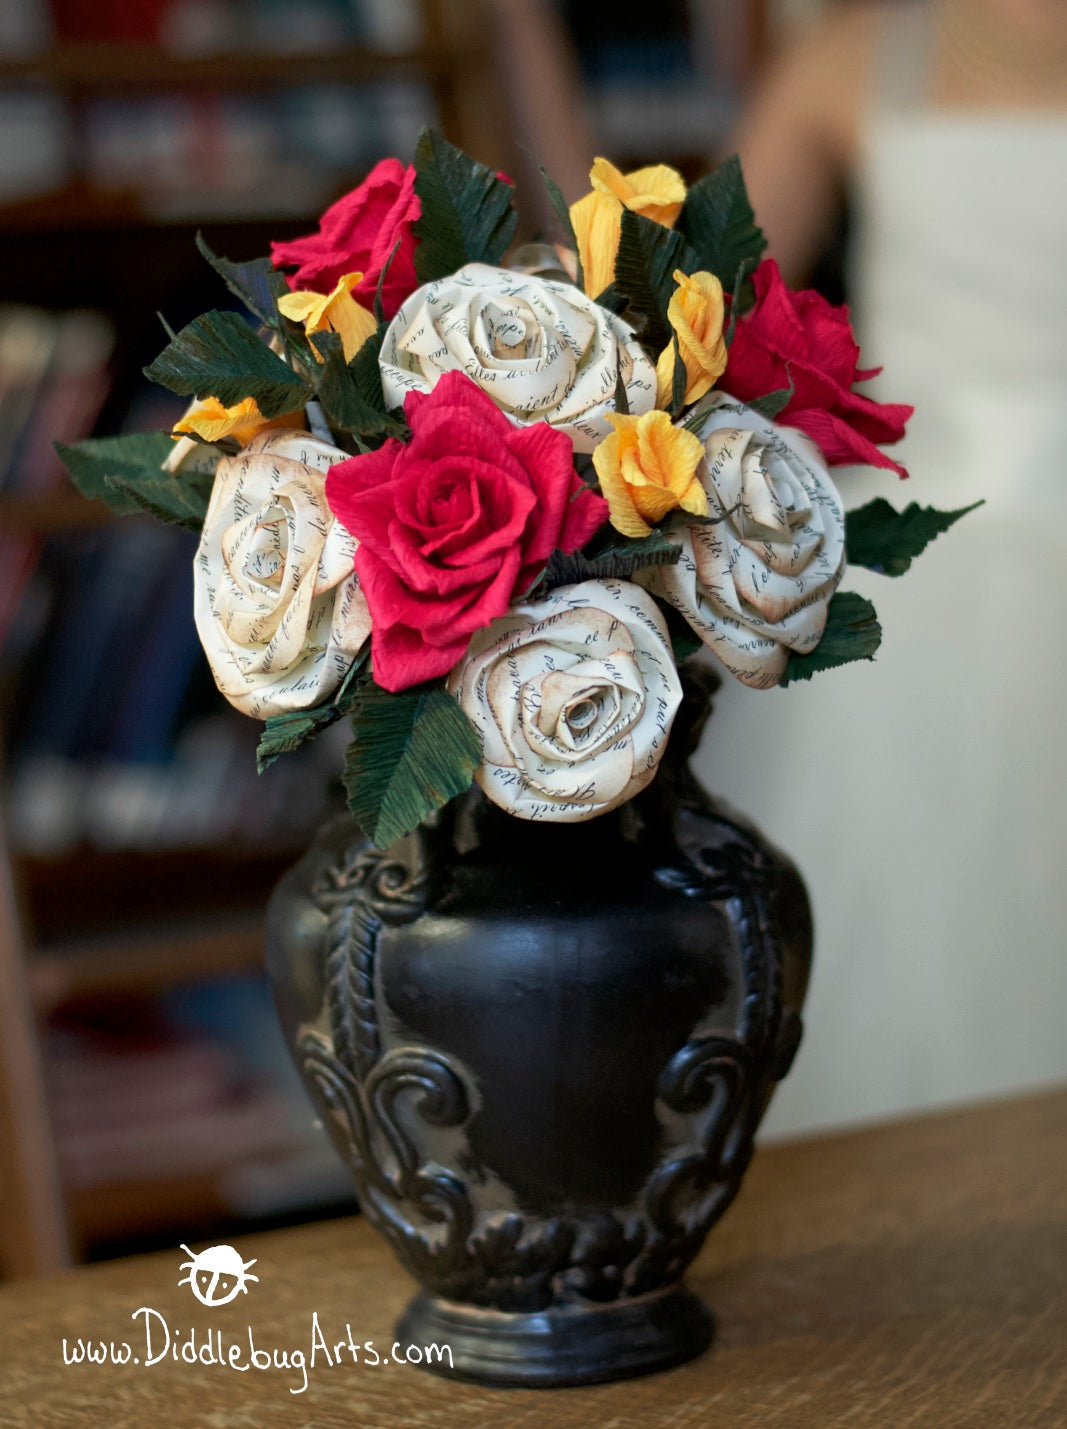 beauty and the beast inspired paper rose bouquet in a vase in a library